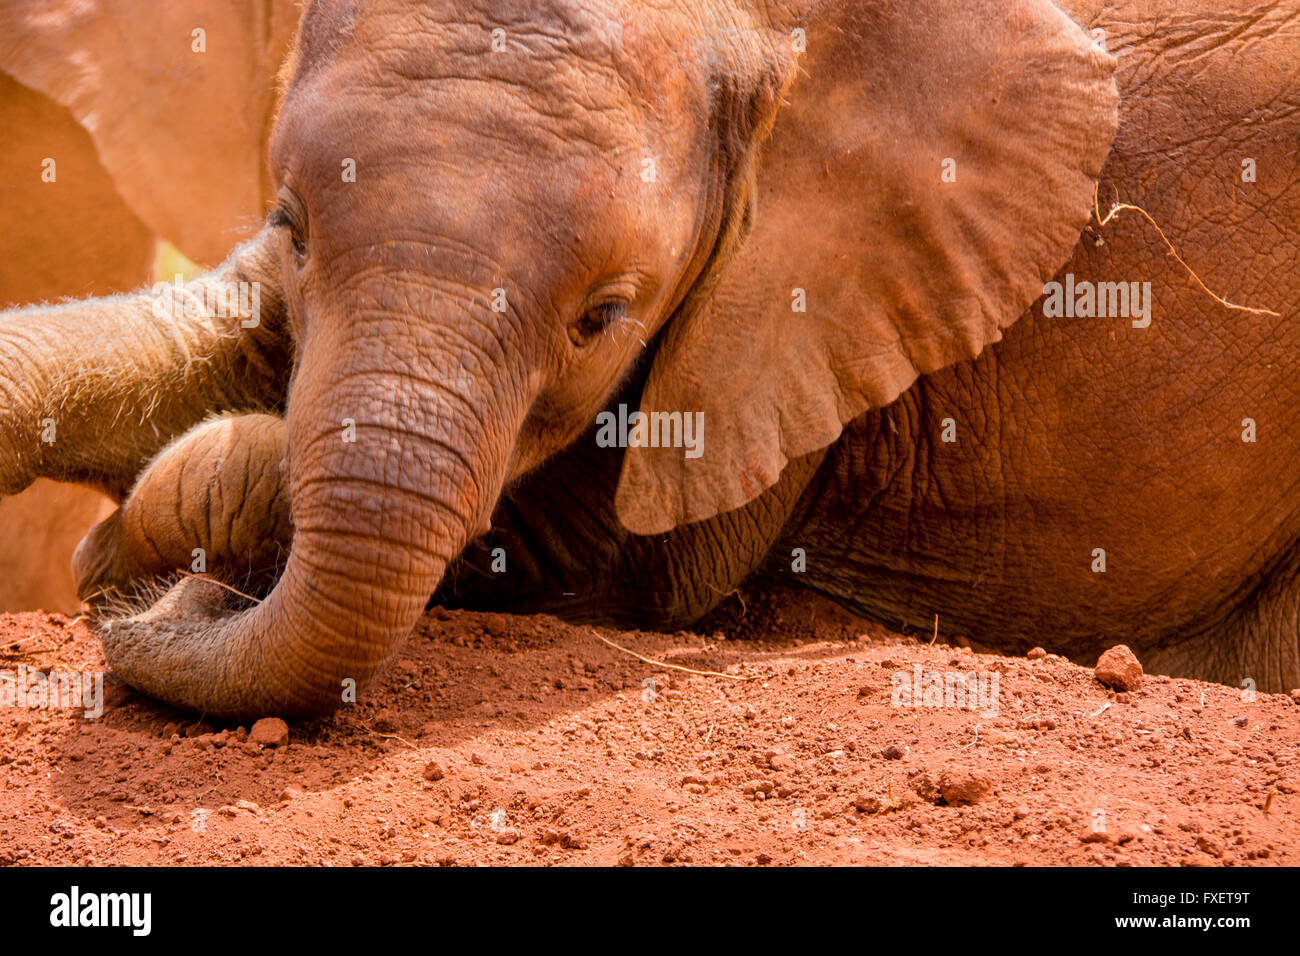 Cute Orphan Baby Elephant,  Loxodonta africana, taking a dust bath at the Sheldrick Elephant Orphanage, Nairobi, - Stock Image